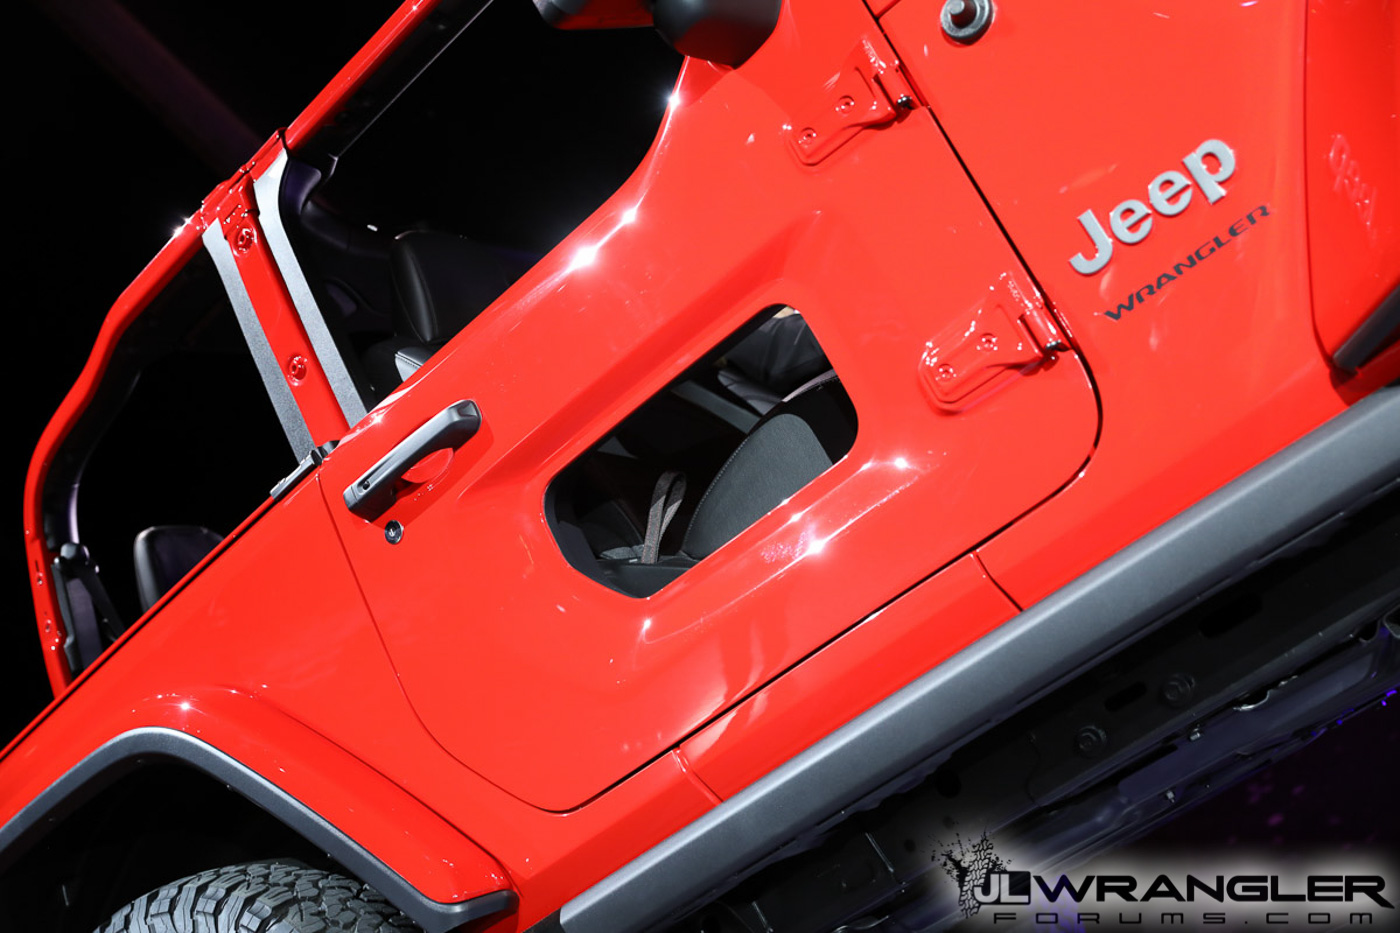 2018-Jeep-Wrangler-JL-Reveal-Rubicon-Firecracker-Red-3.jpg